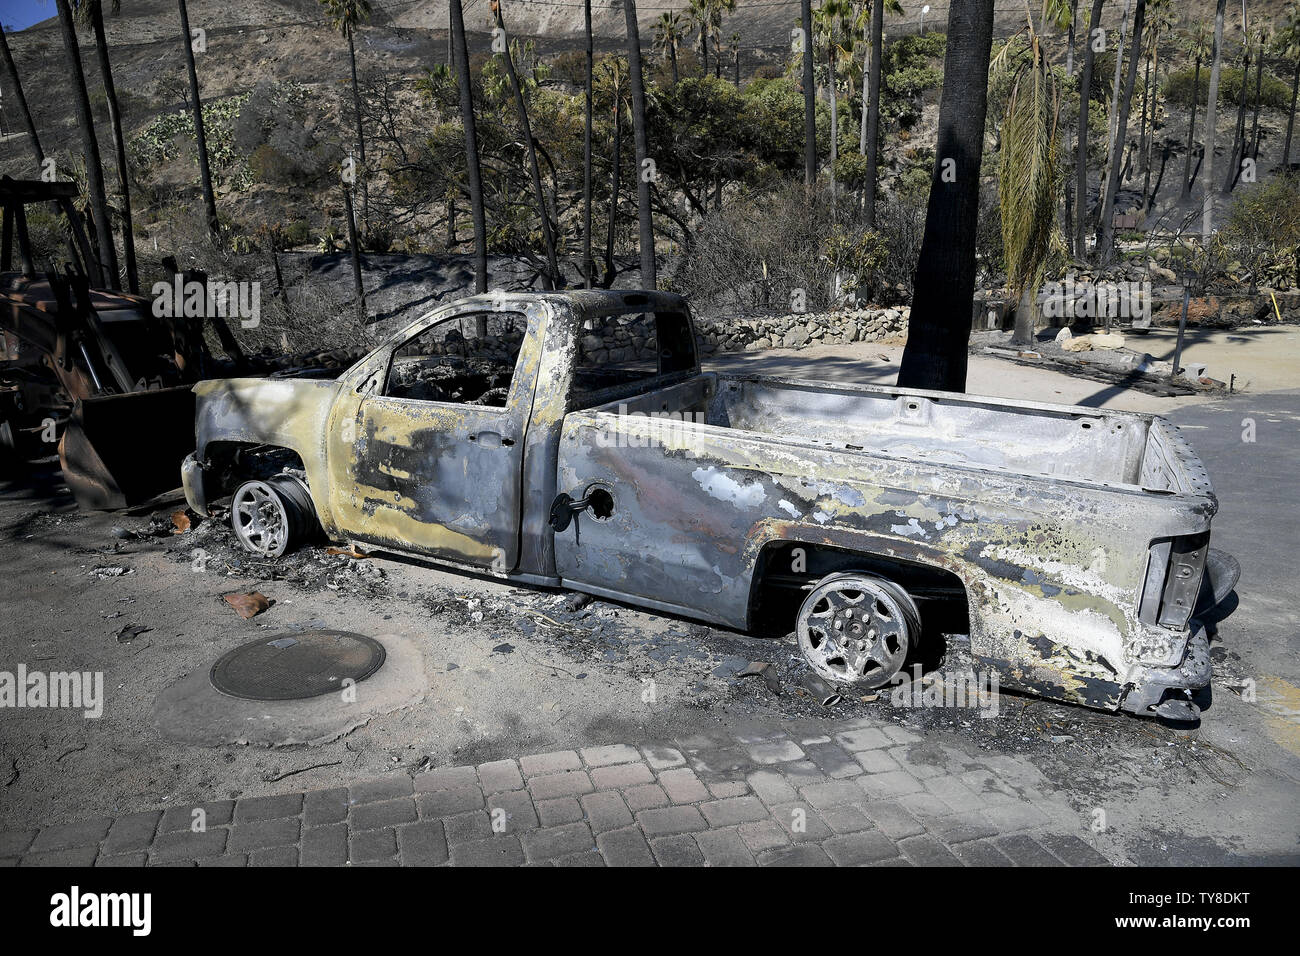 Image result for image of charred reamins of a yellow pick up truck